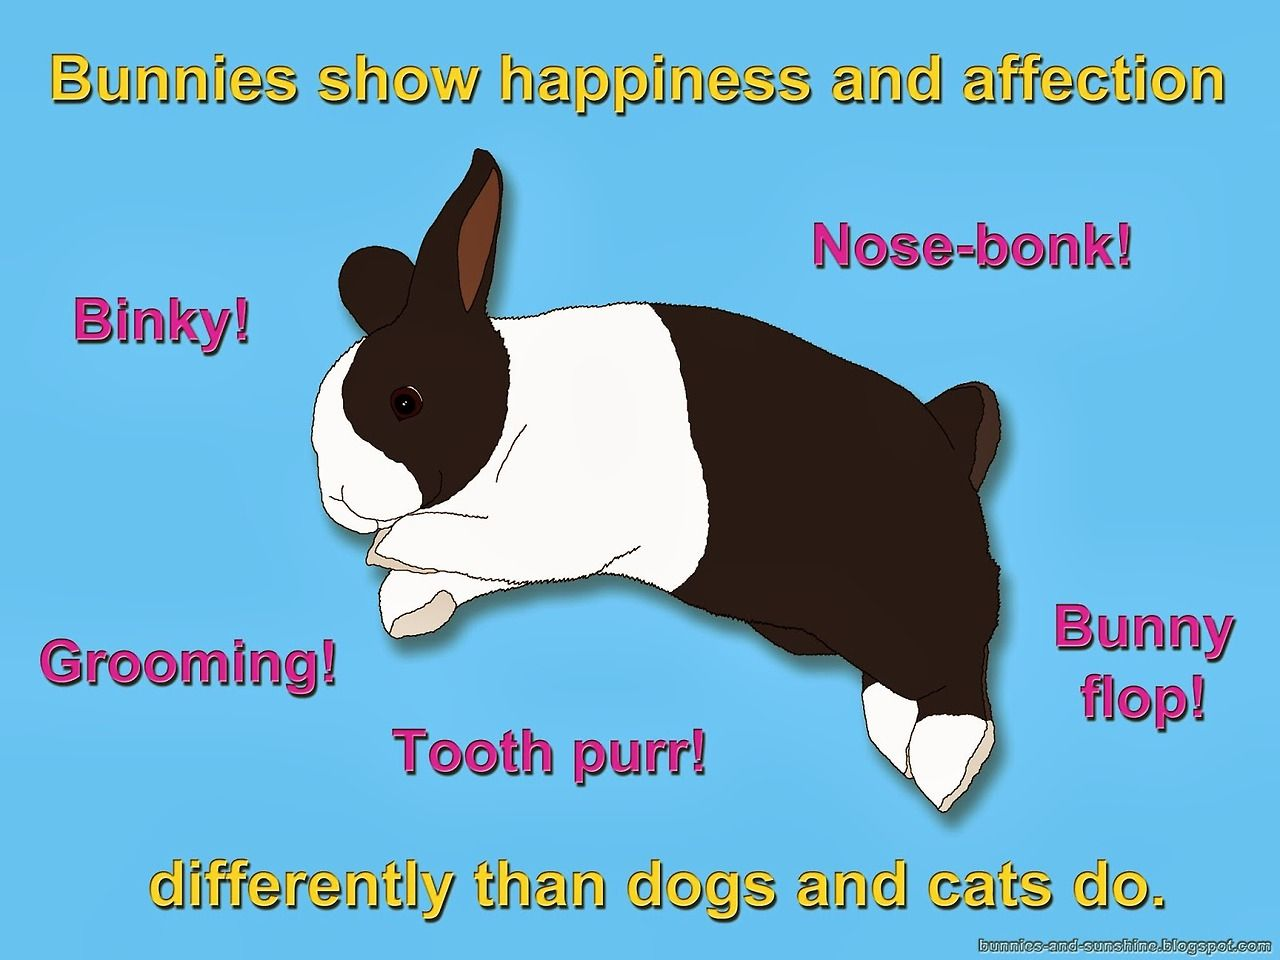 Bunnies Show Happiness And Affection Differently Than Dogs And Cats 08 08 19 Bunny Crazy Cats Dog Cat